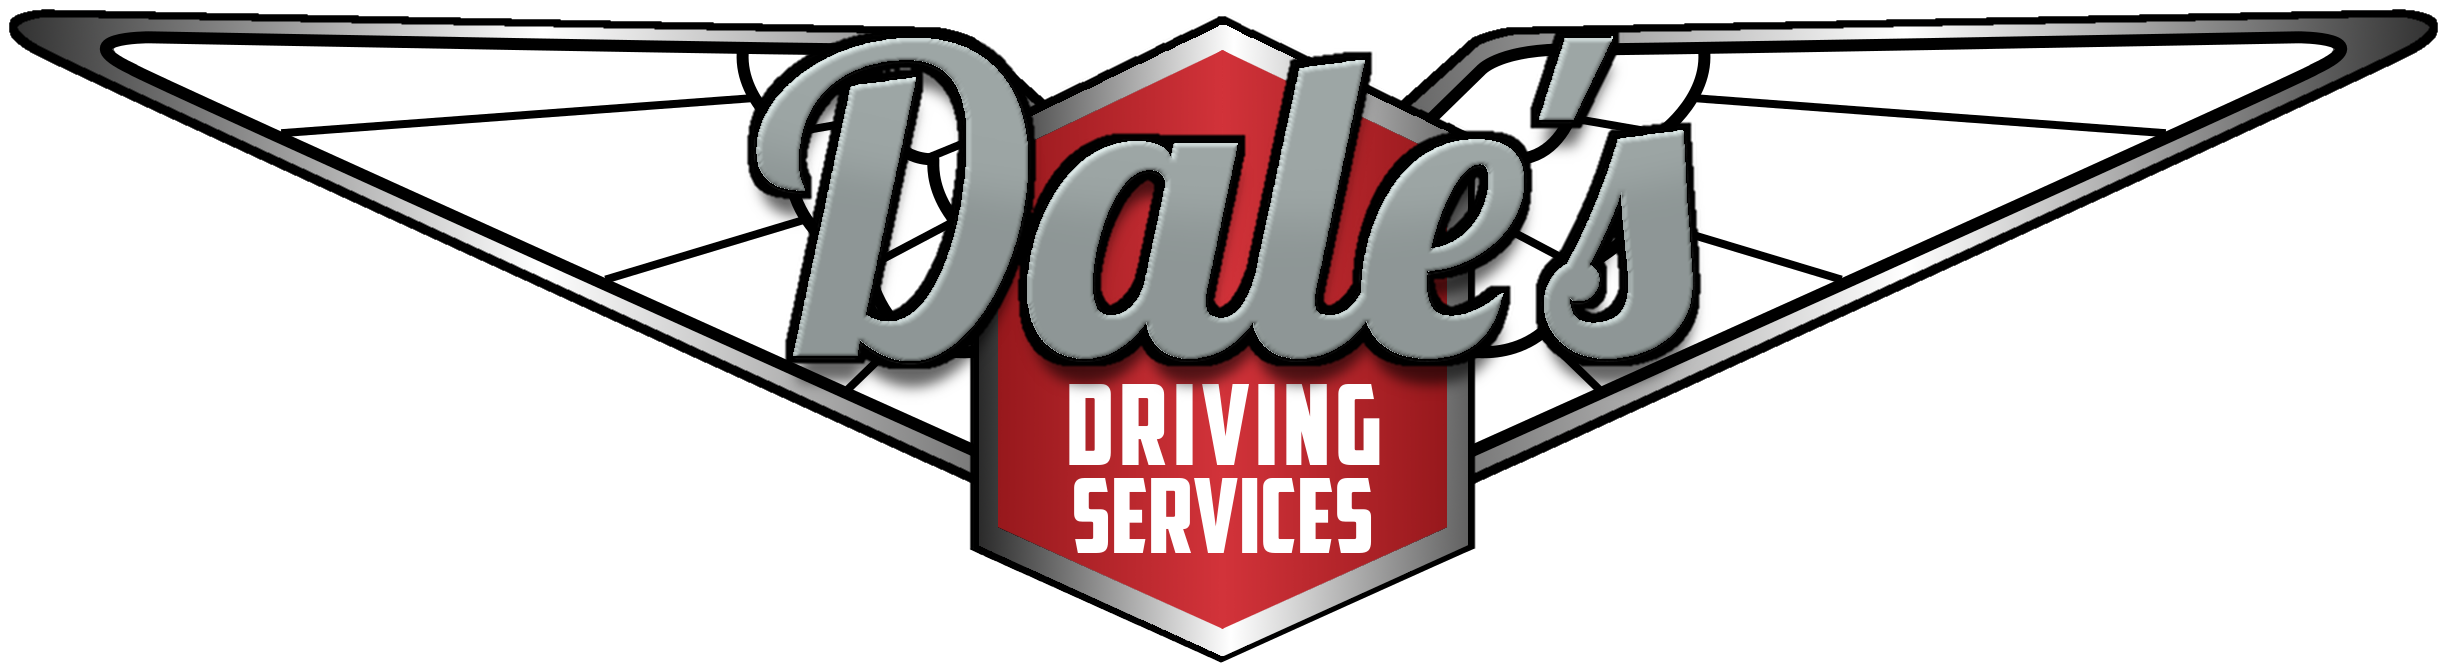 dale logo.png